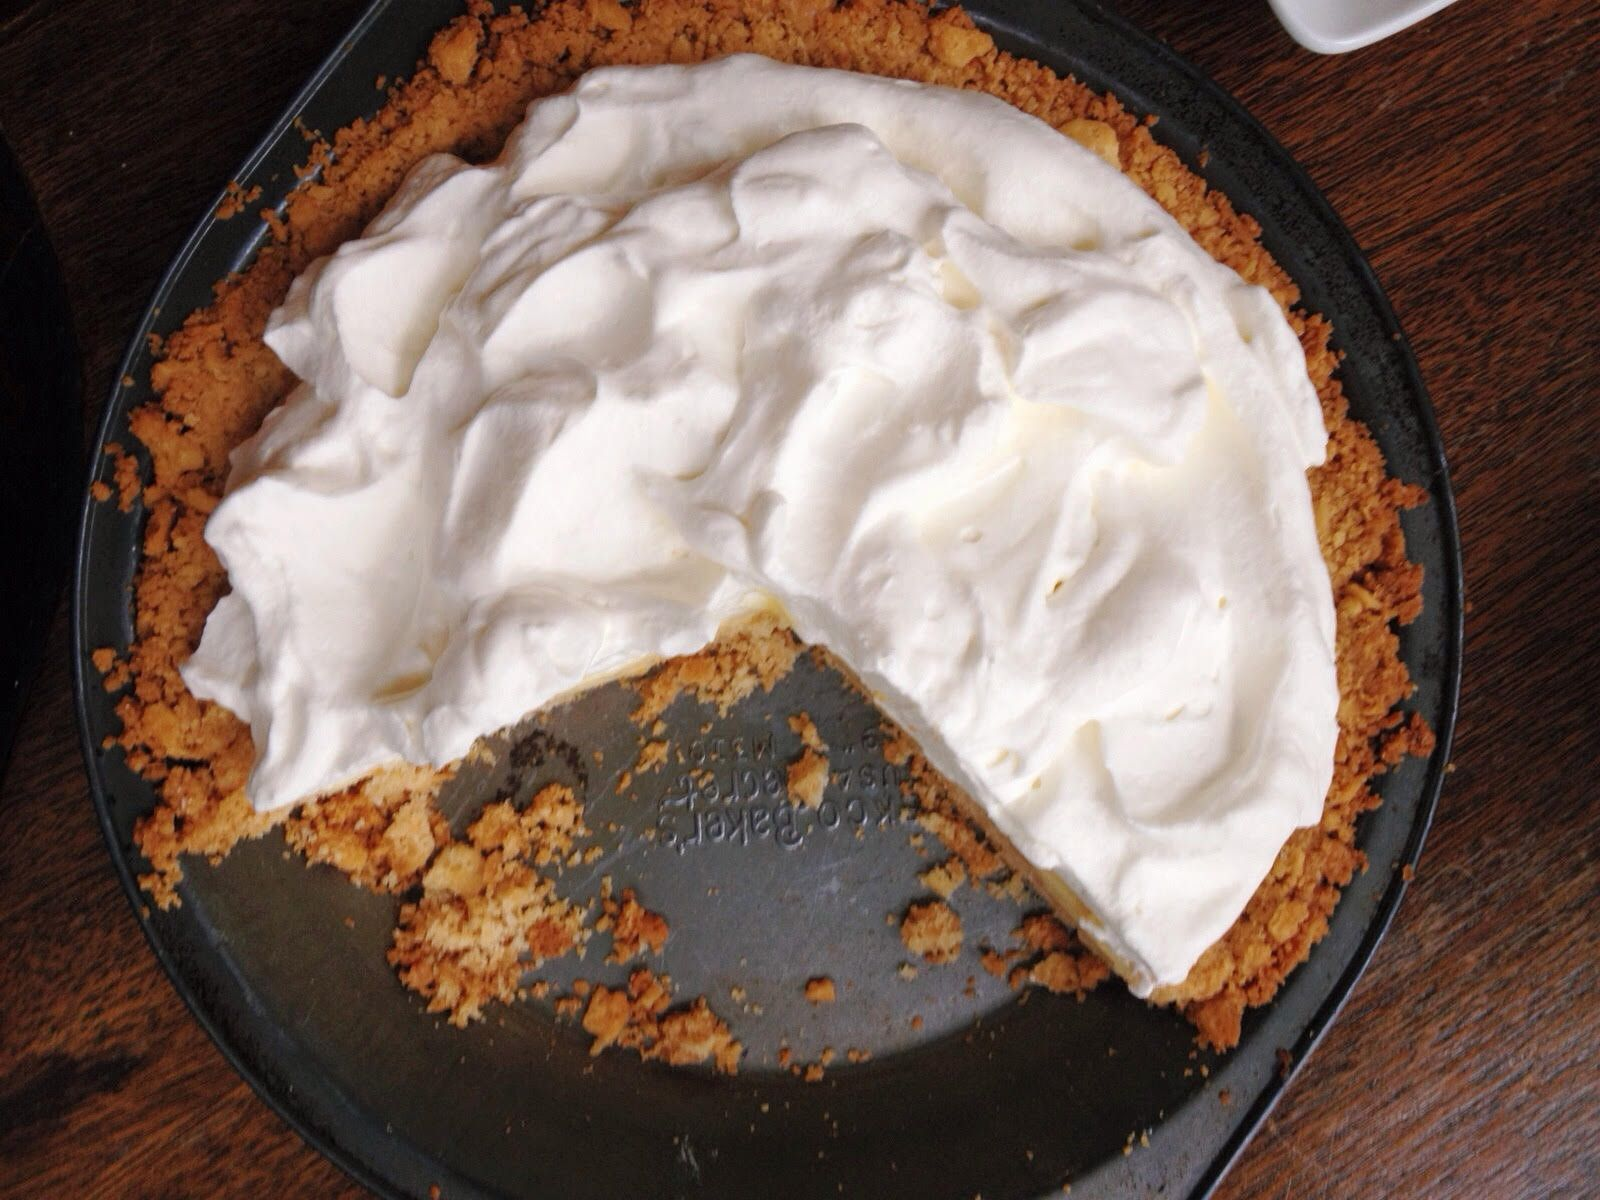 THE ASSOCIATED PRESSThe beauty of this pie lies in the play between the salty, dense crust made from soda crackers and the creamy sweet-and-tart filling featuring citrus juice.